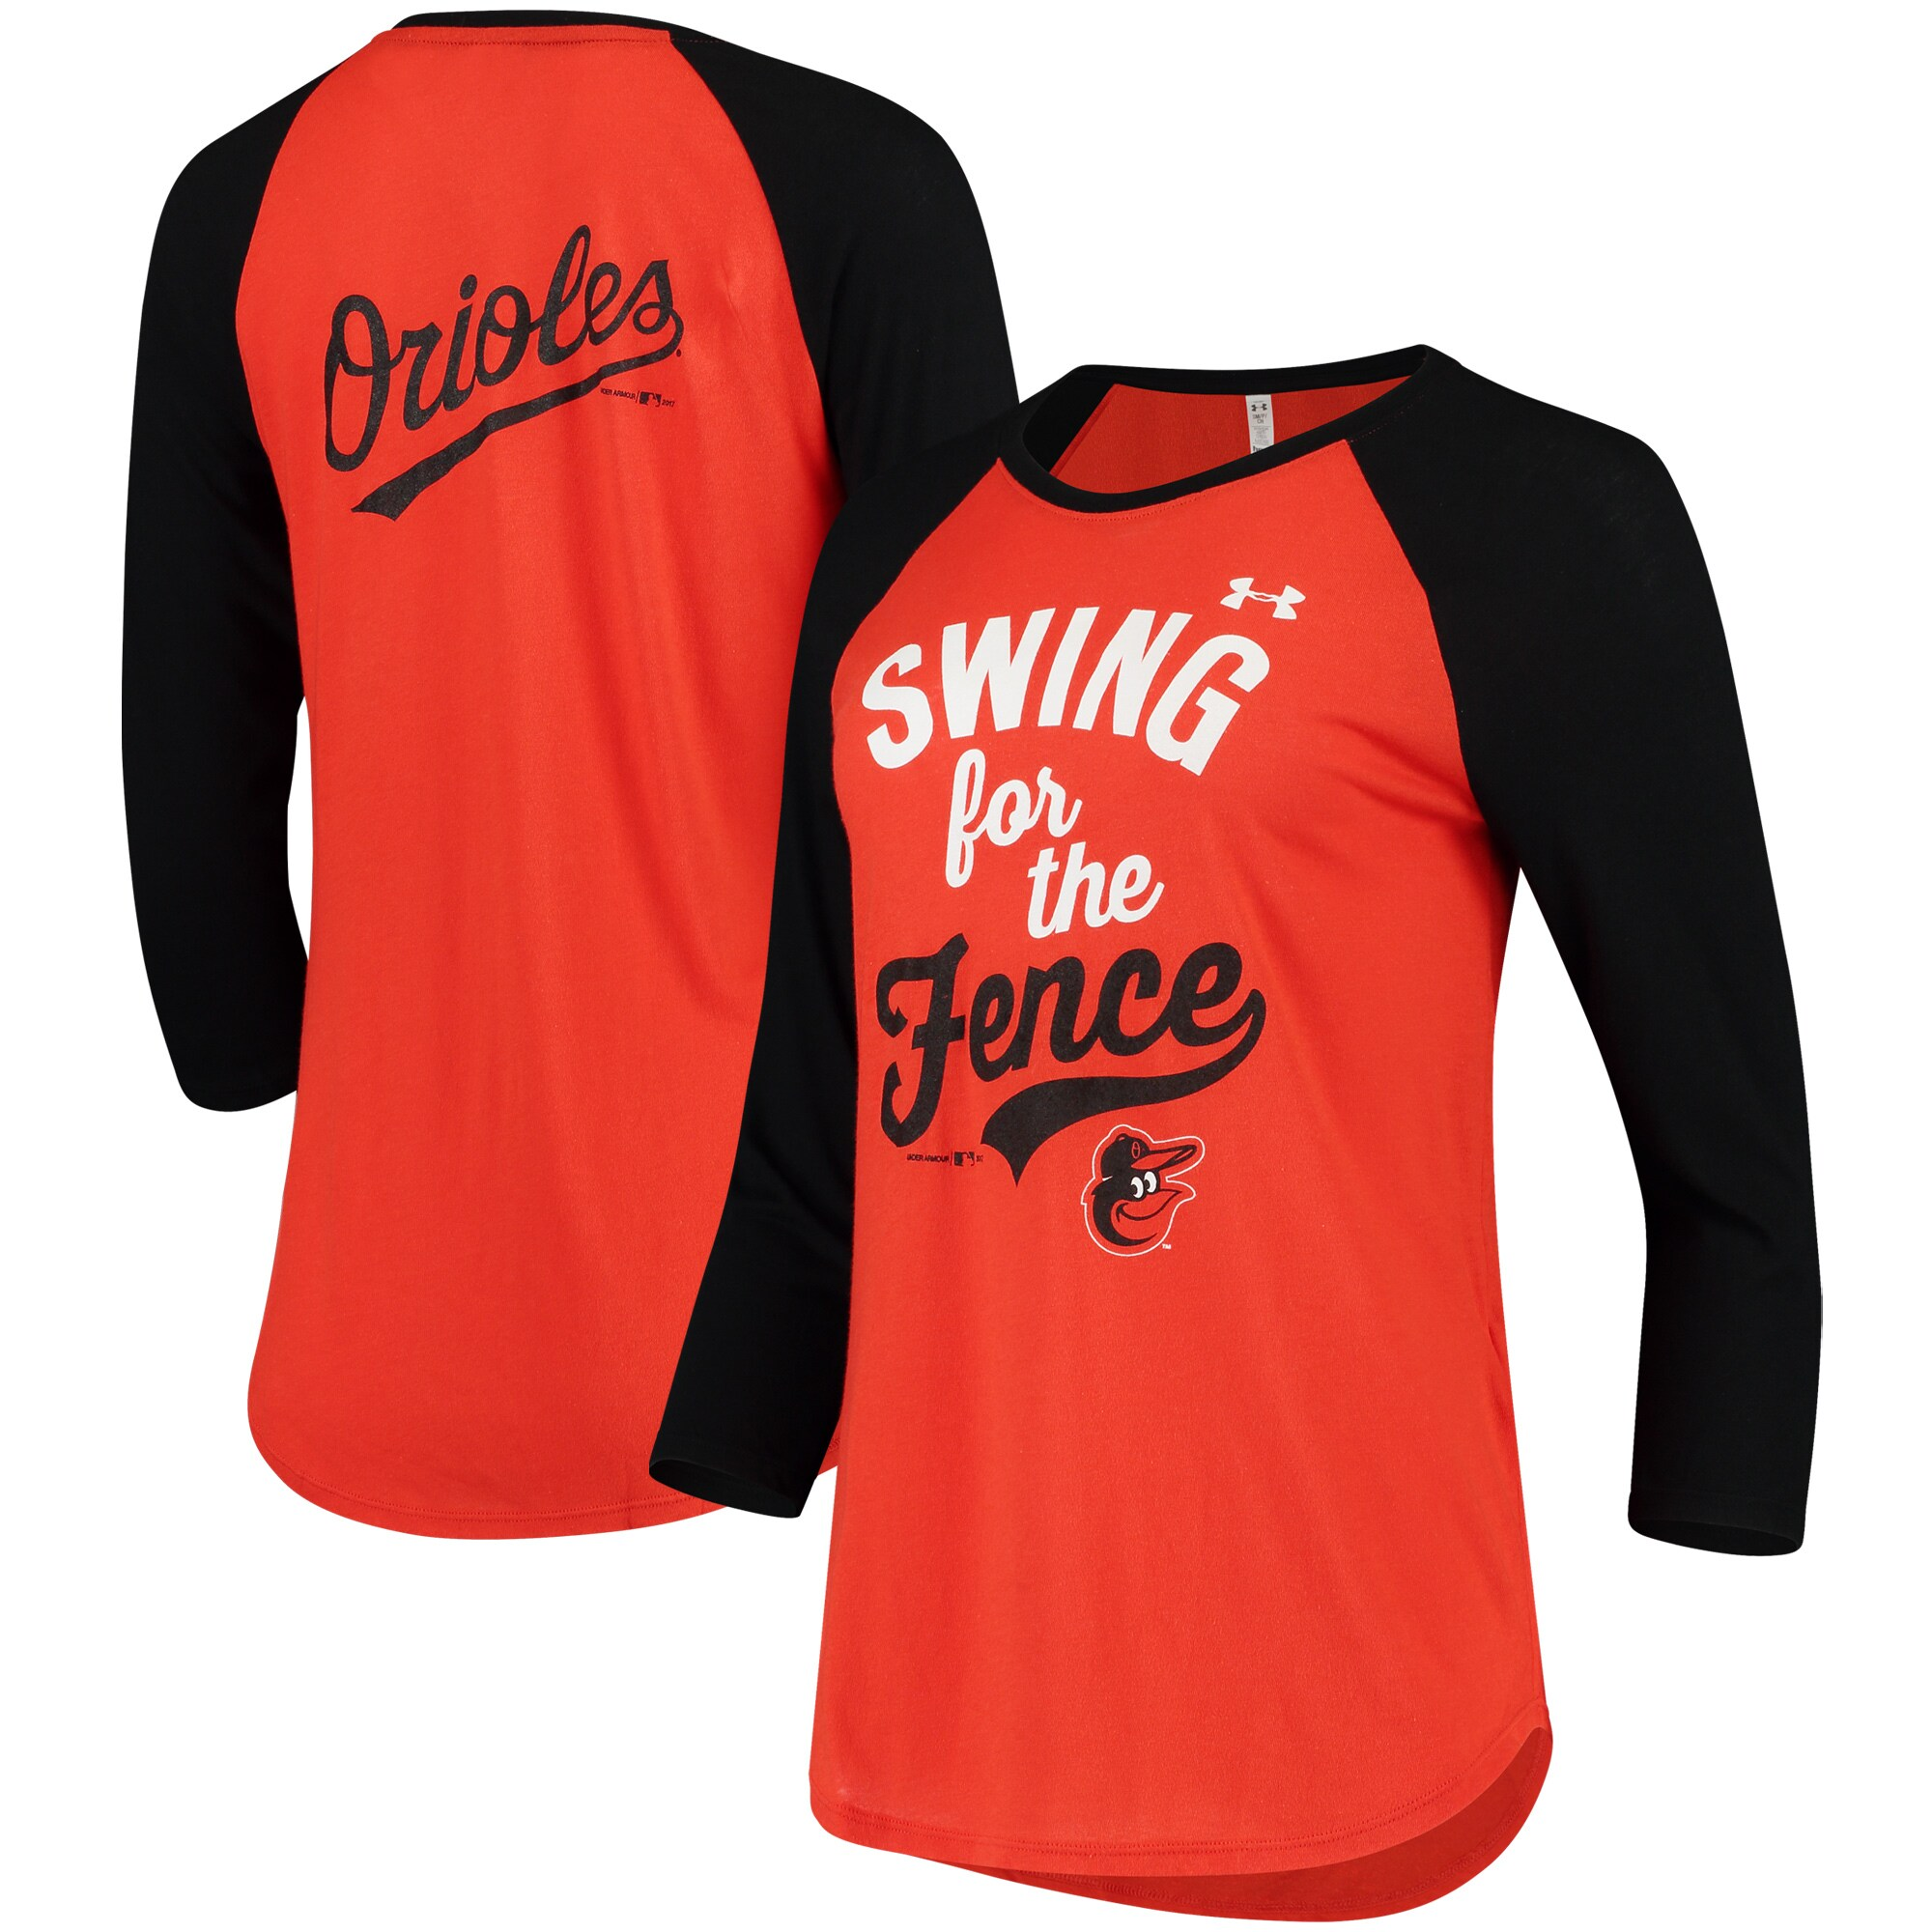 Baltimore Orioles Under Armour Women's Baseball 3/4-Sleeve Performance T-Shirt - Orange/Black